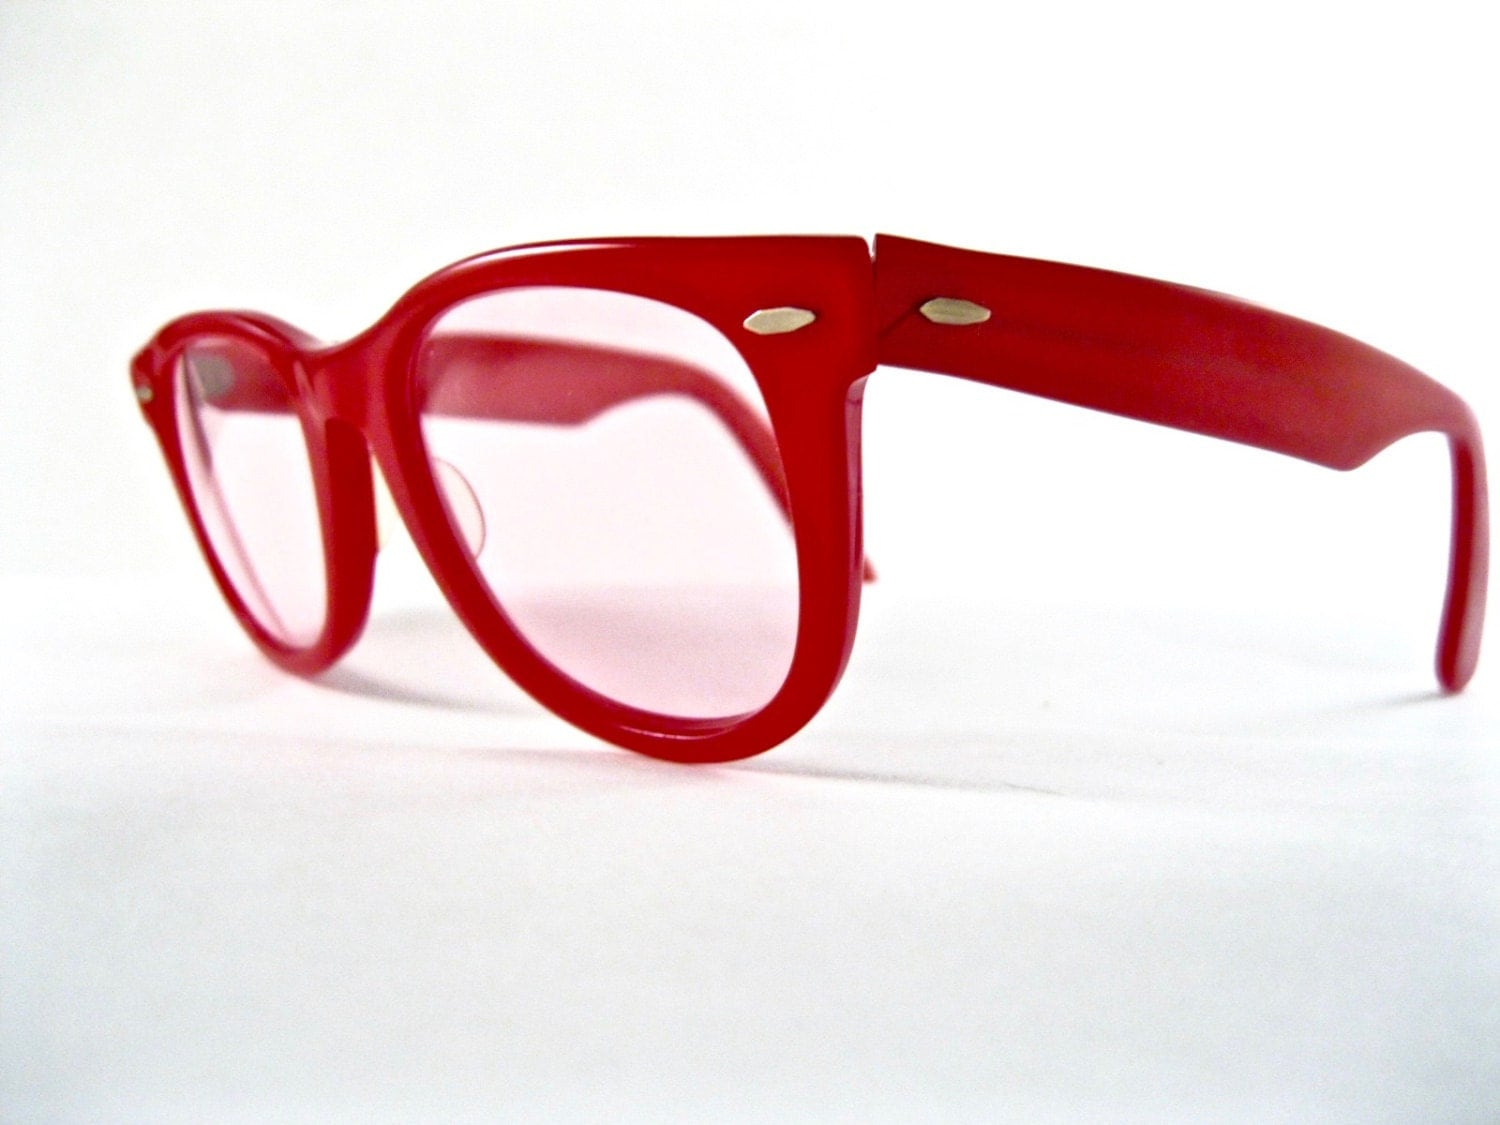 Ray-Ban Wayfarer 1st generation in red. RARE color 1950s vintage ...